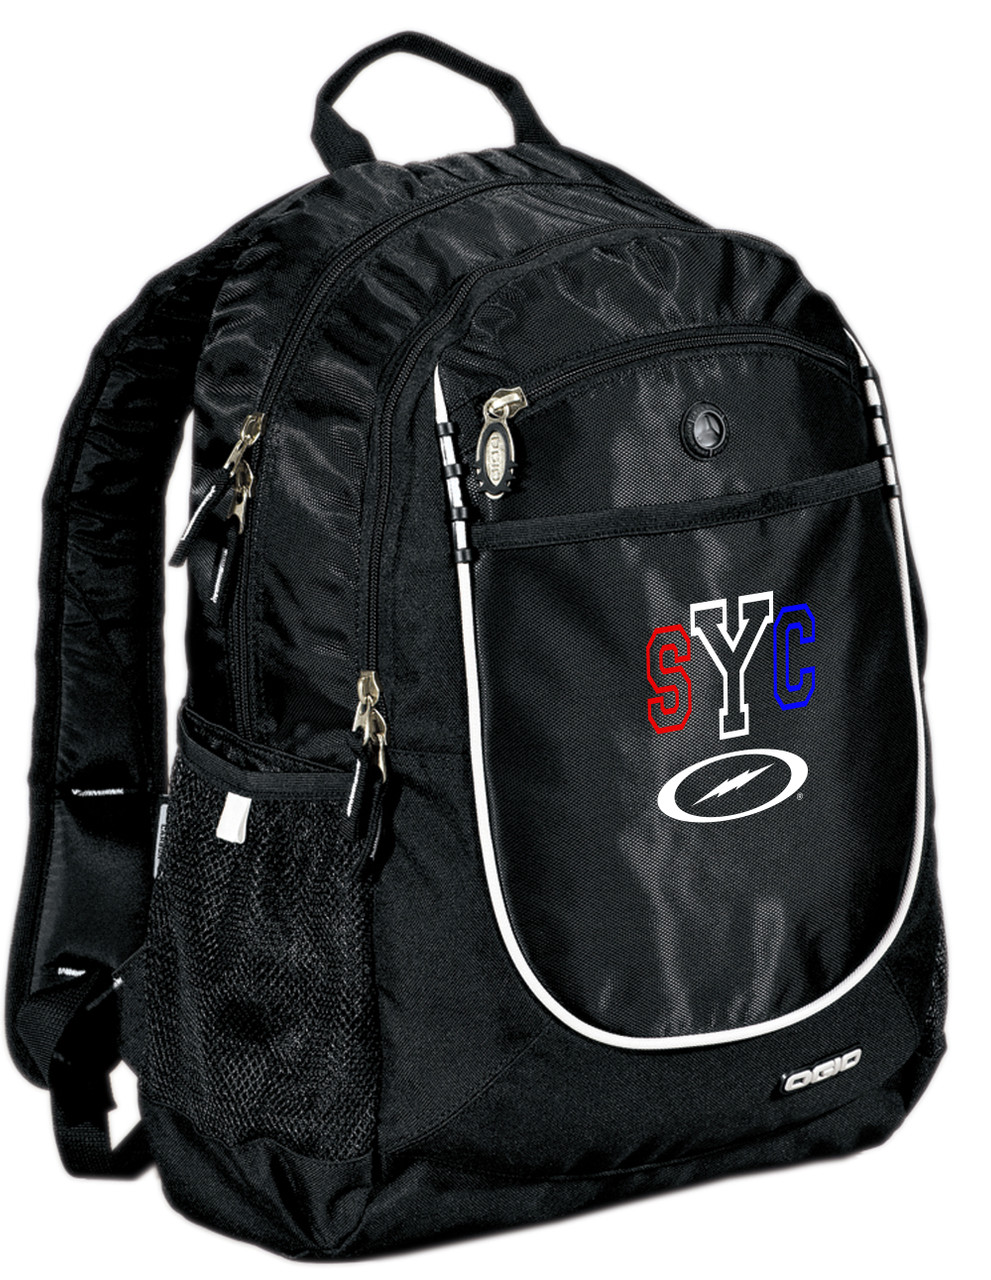 SYC Backpack - Black w/ Red/White/Blue Embroidery